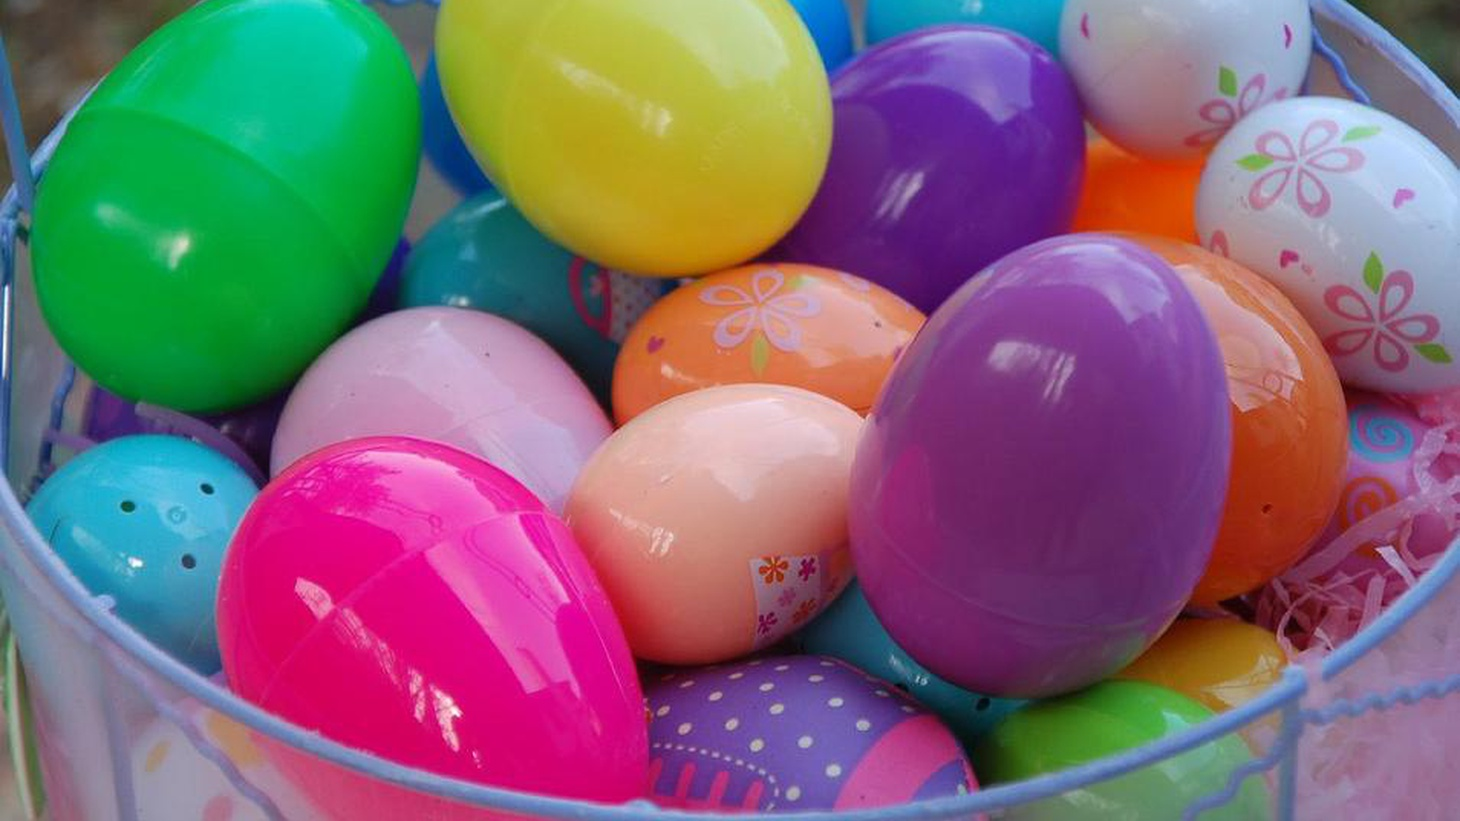 From eggs to candy, we cover all things Easter. Plus, we head to Little Saigon for nem nuong and hear an update on the status of the Sriracha factory in Irwindale.